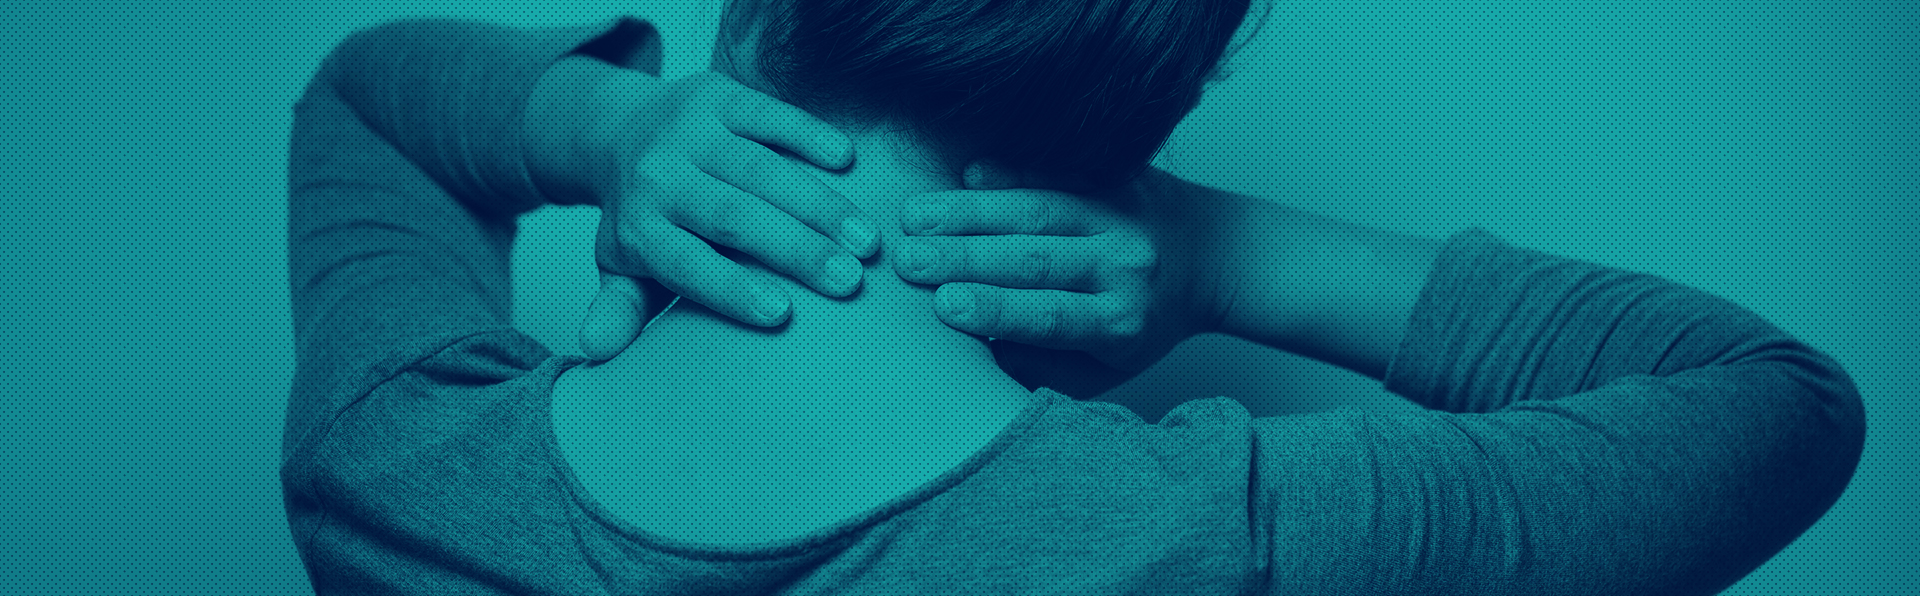 Do you suffer from neck pain?